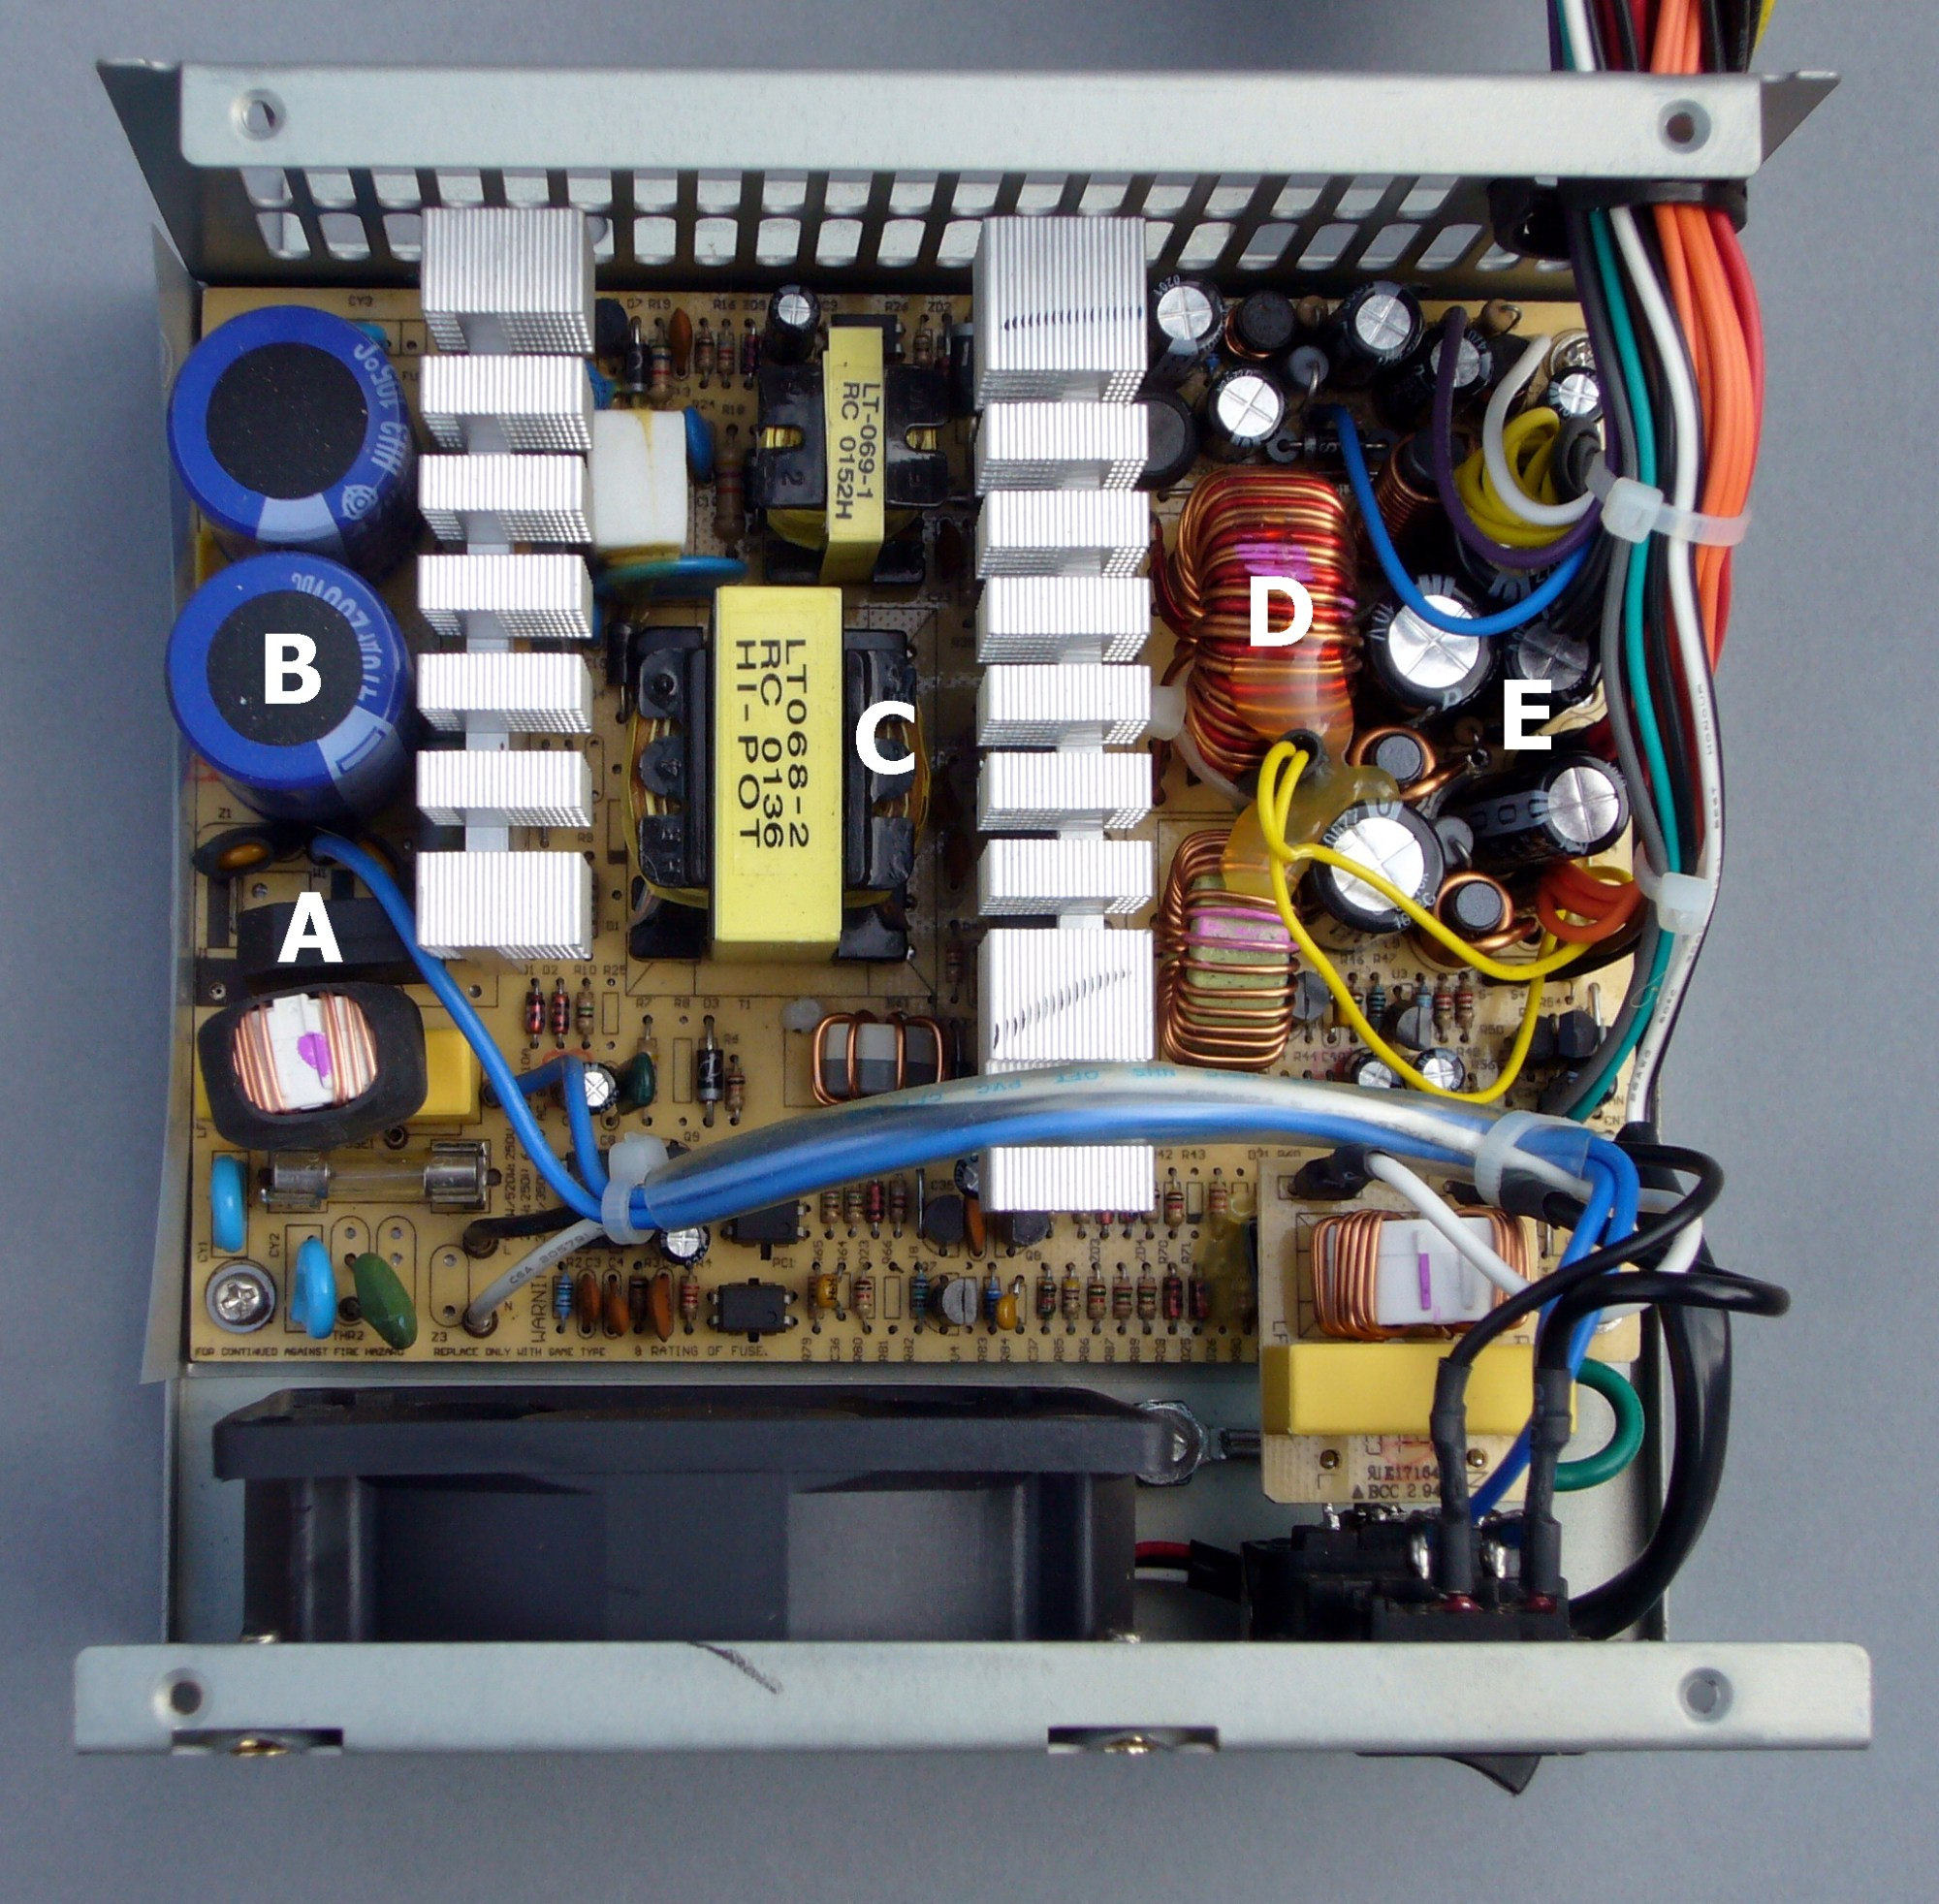 hight resolution of file atx power supply interior jpg